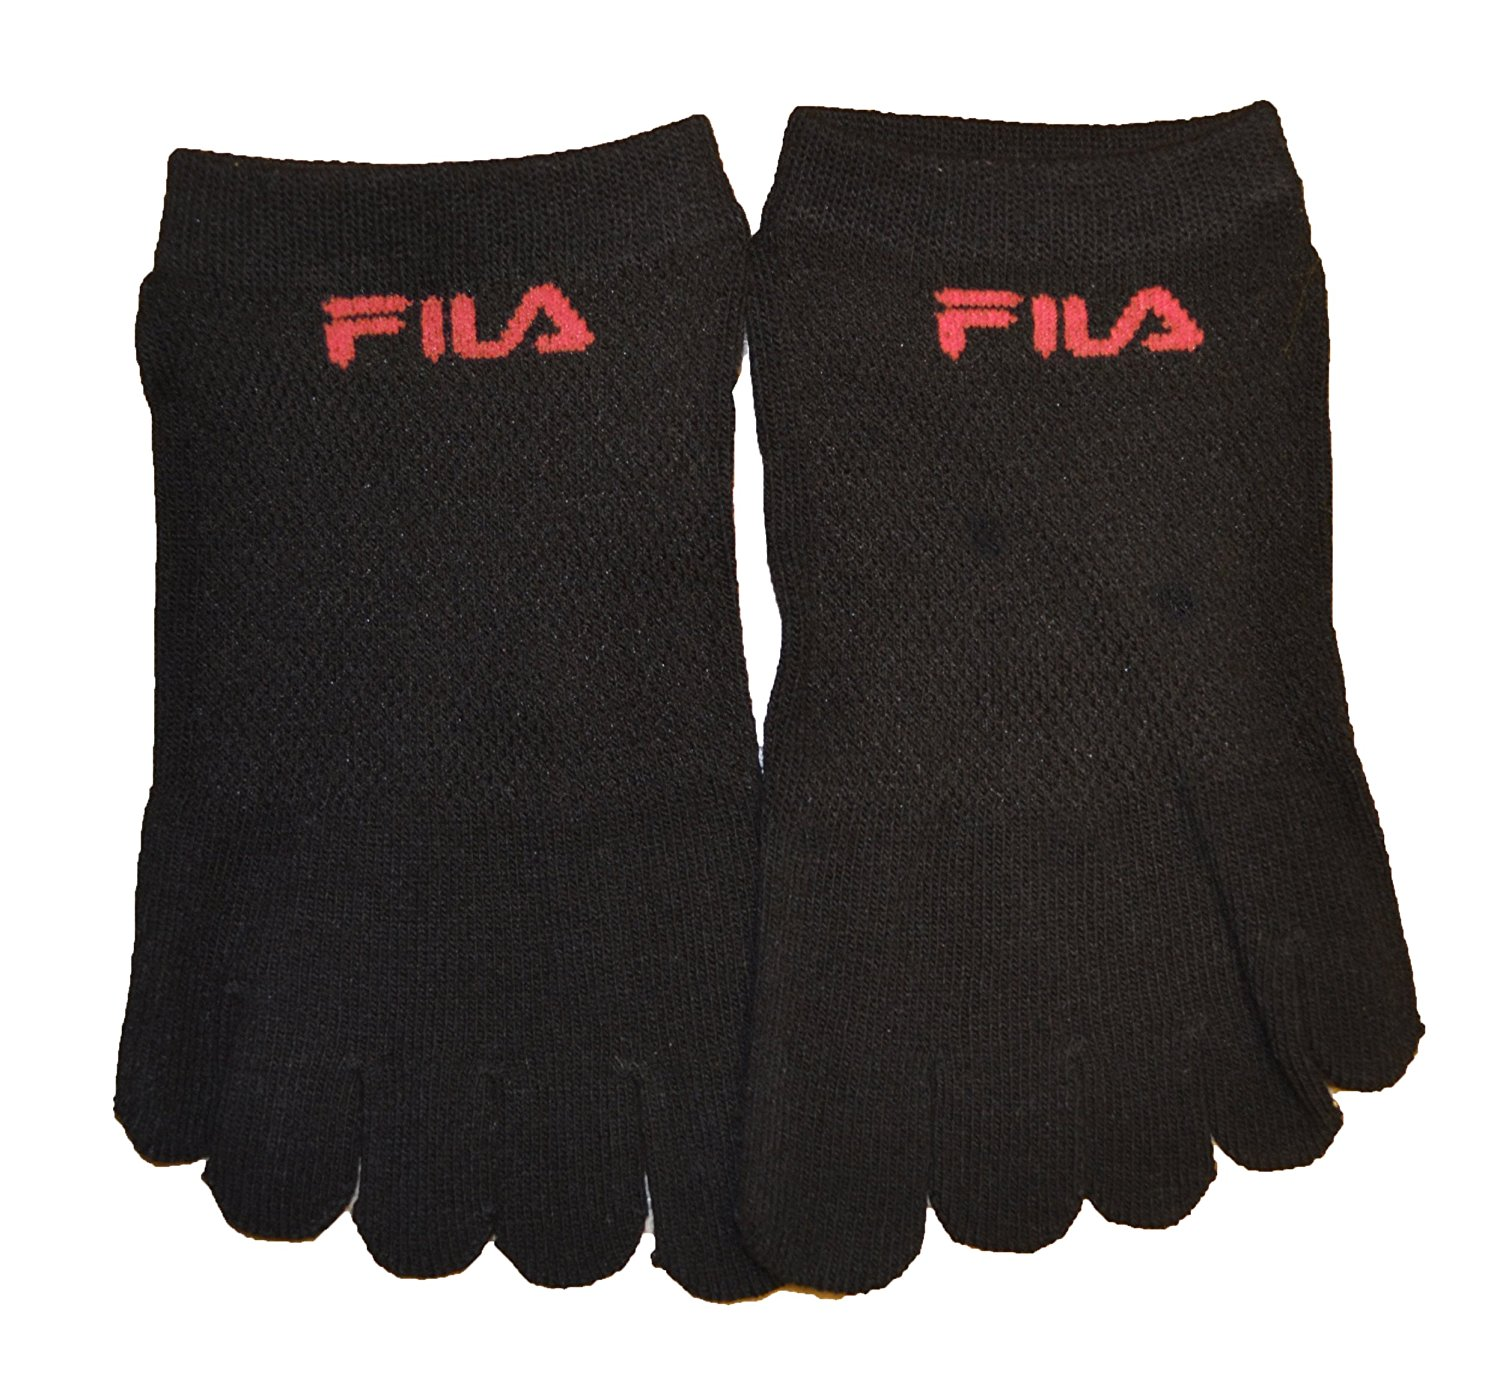 29138cf1d0714 Cheap Fila Skele Toes Review, find Fila Skele Toes Review deals on ...